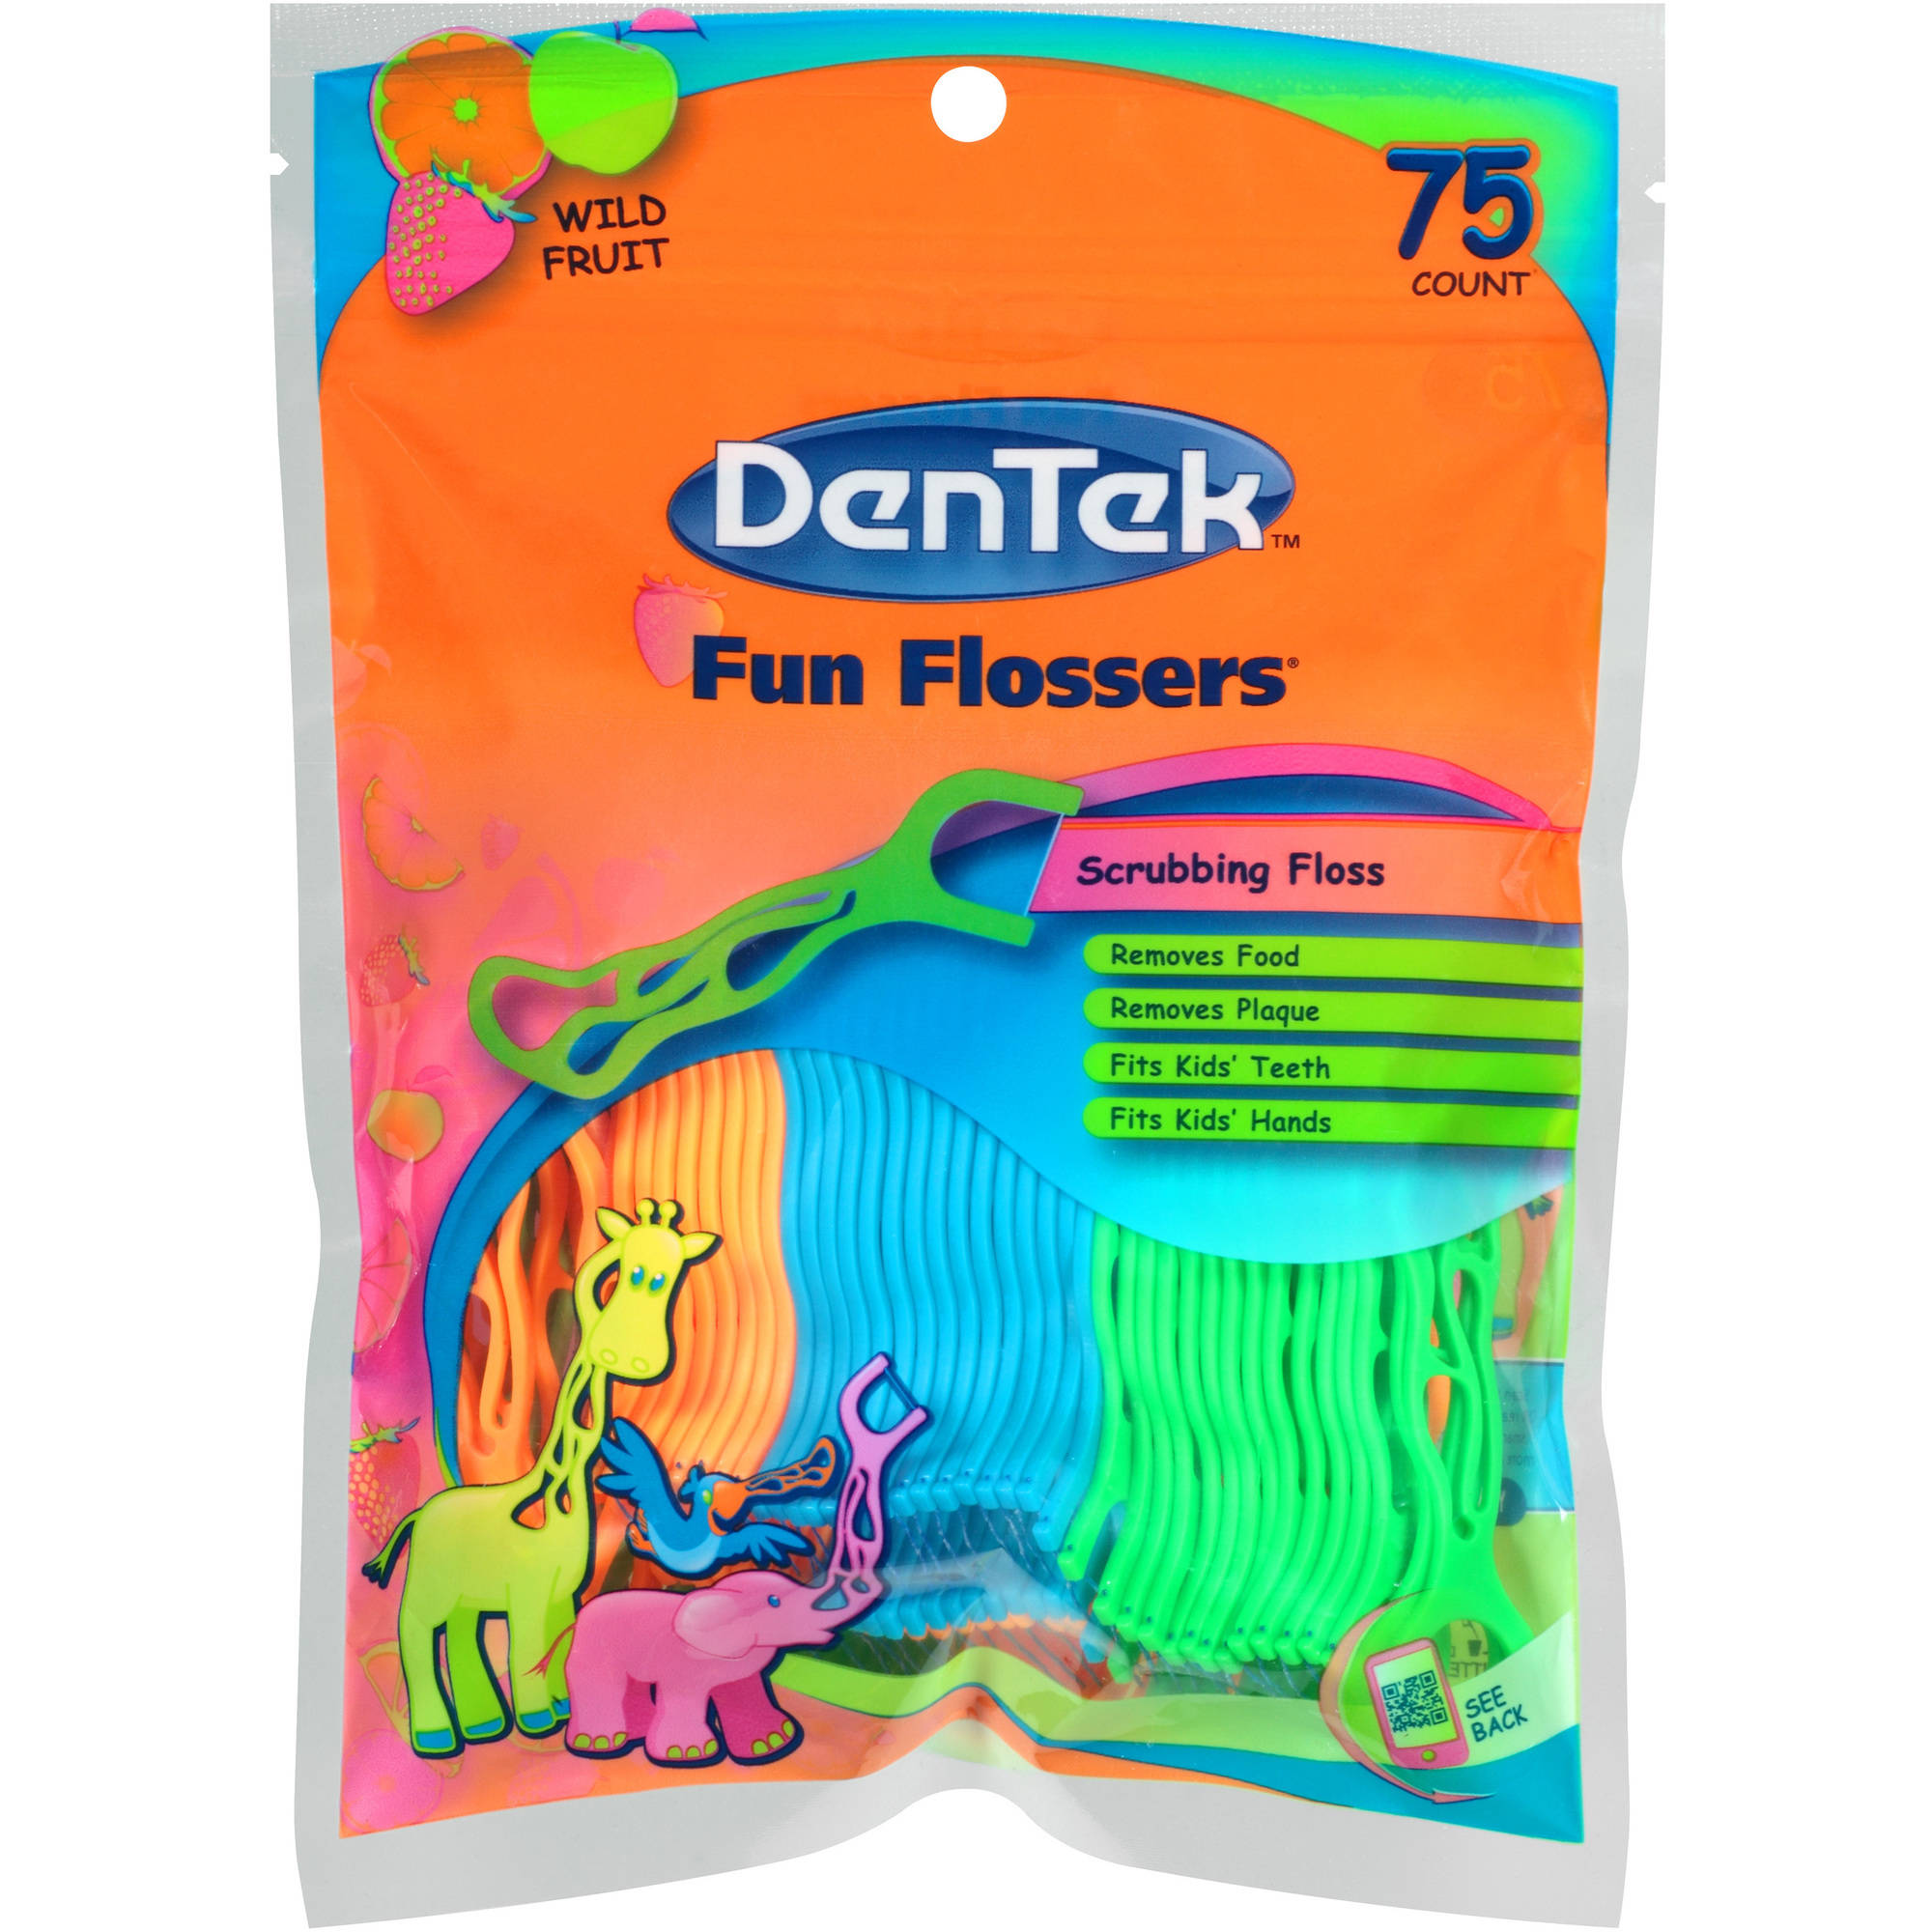 Dentek Fun Flossers Wild Fruit Floss Picks, 75 count